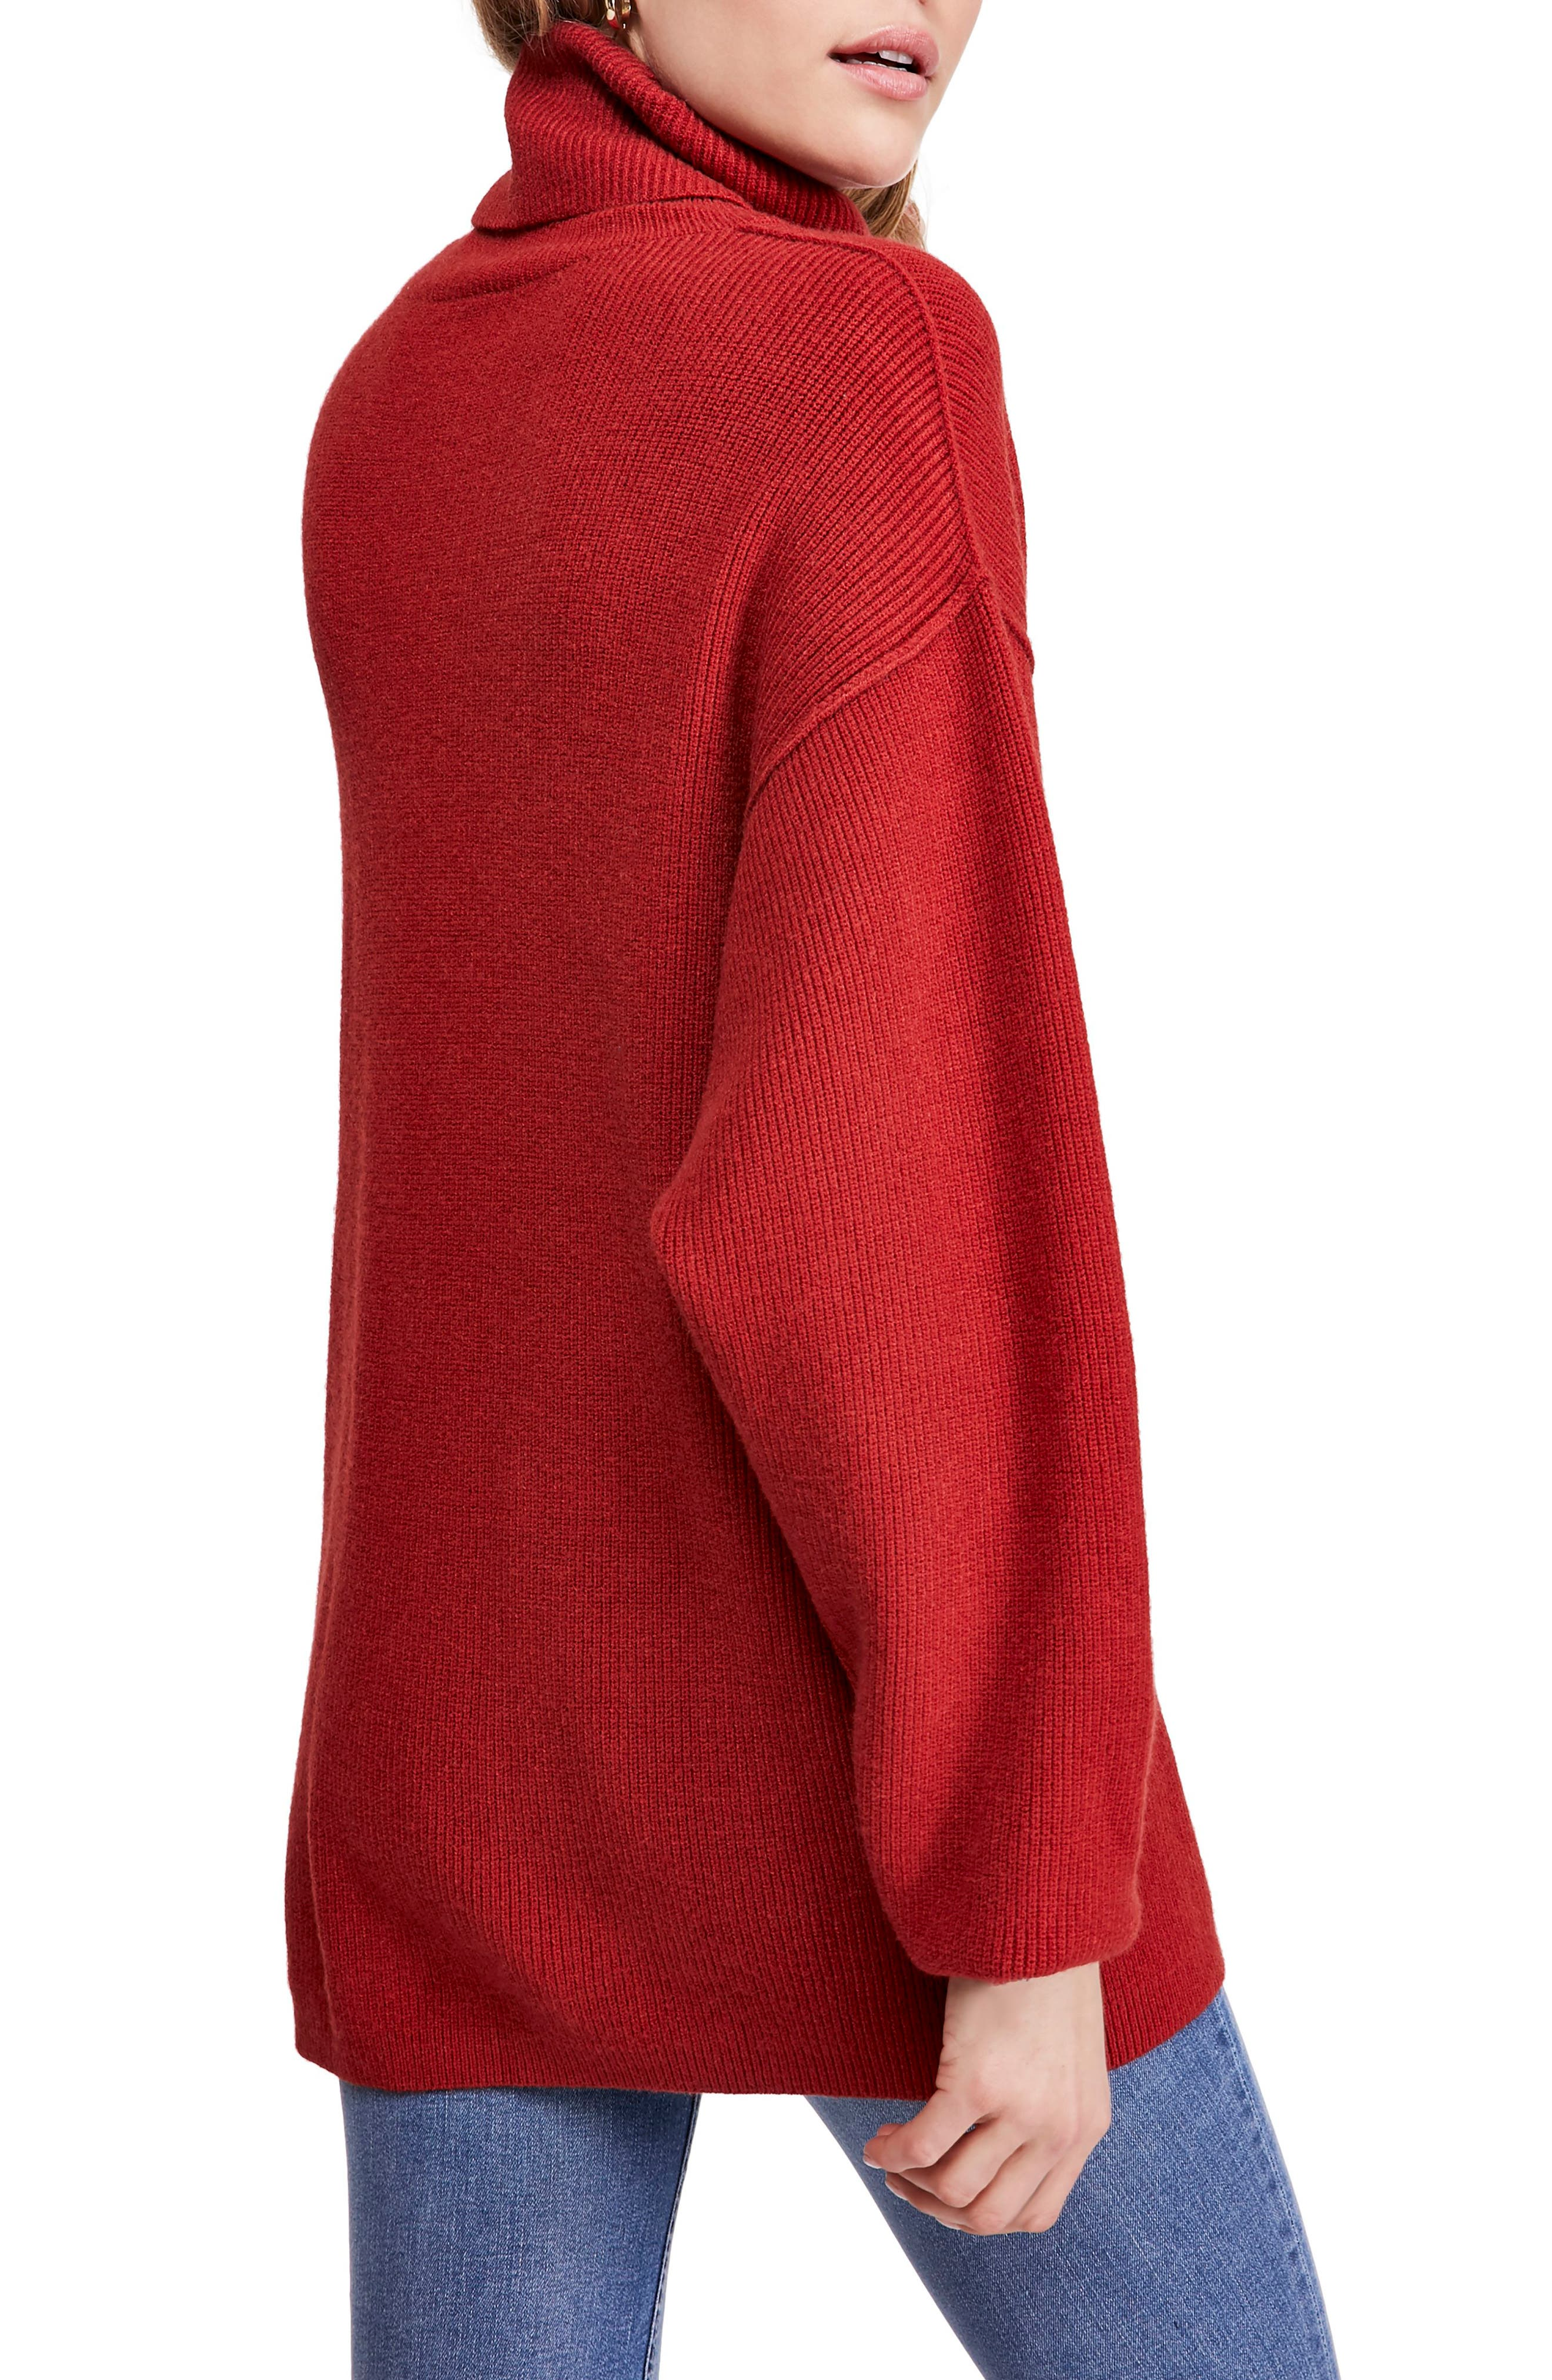 FREE PEOPLE, Softly Structured Knit Tunic, Alternate thumbnail 2, color, 600